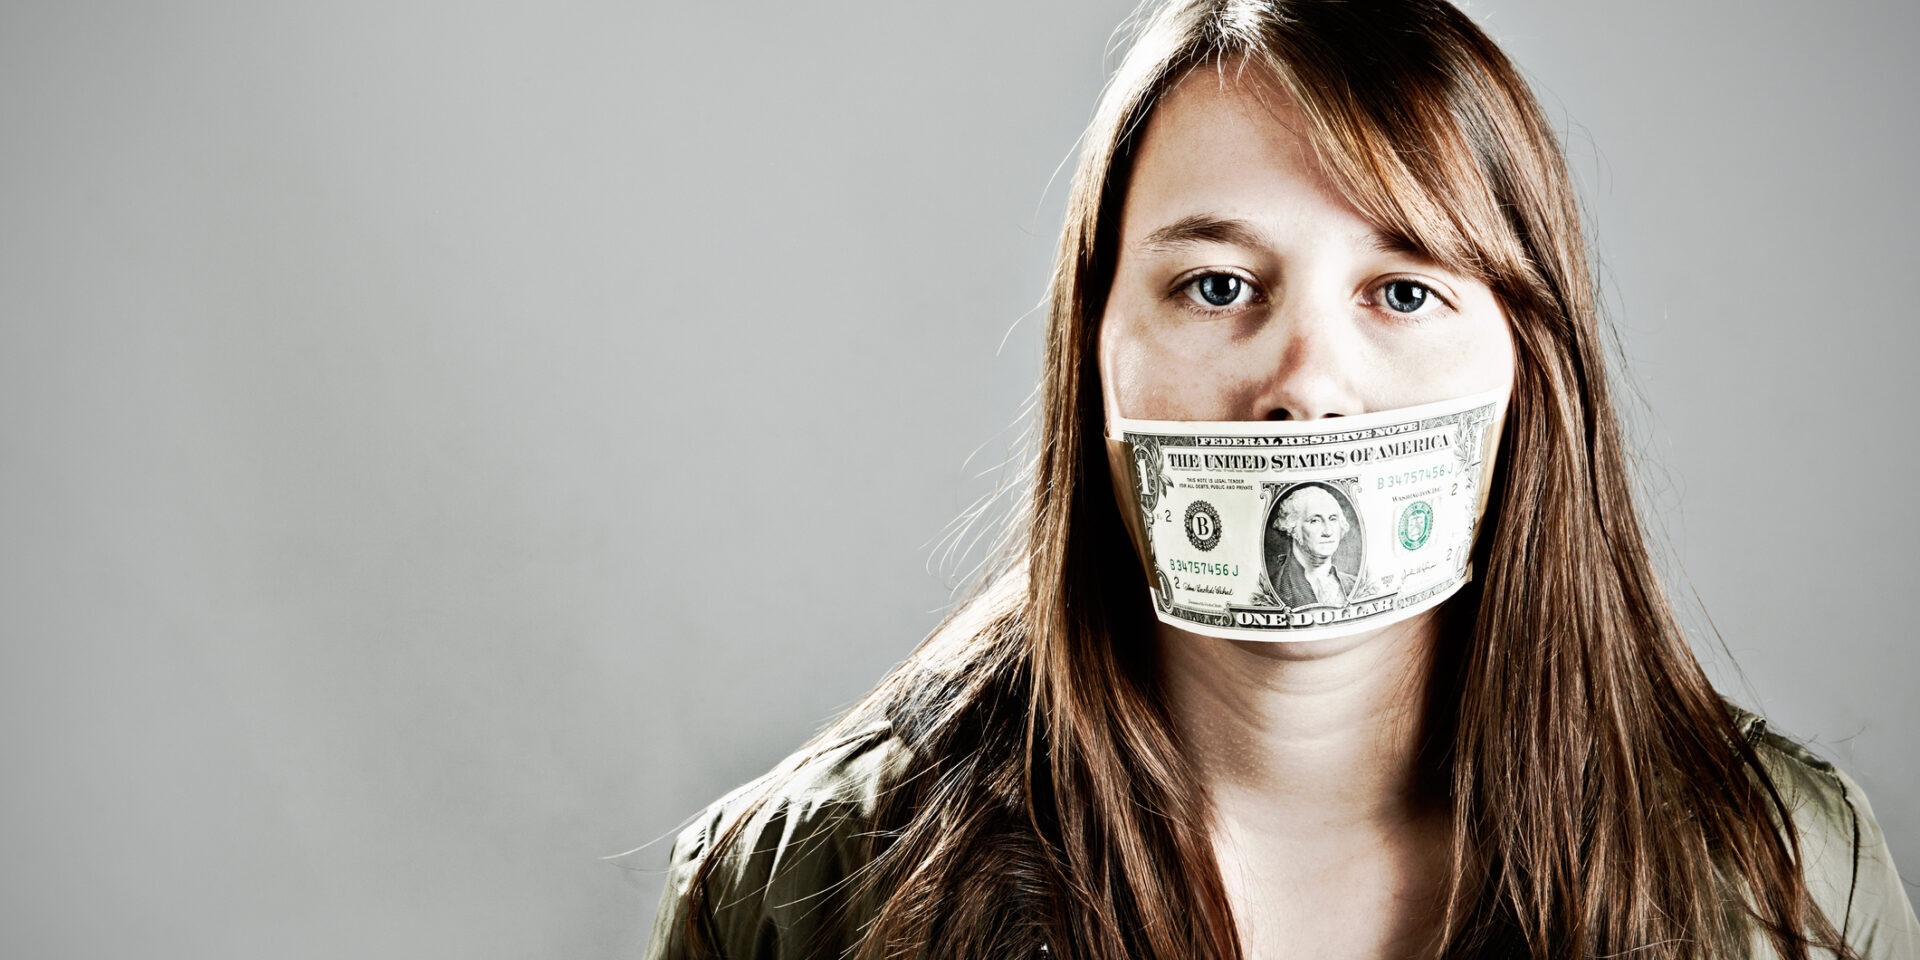 This young woman seems to have accepted being gagged with a US one dollar bill; she'll keep quiet if she's paid to!